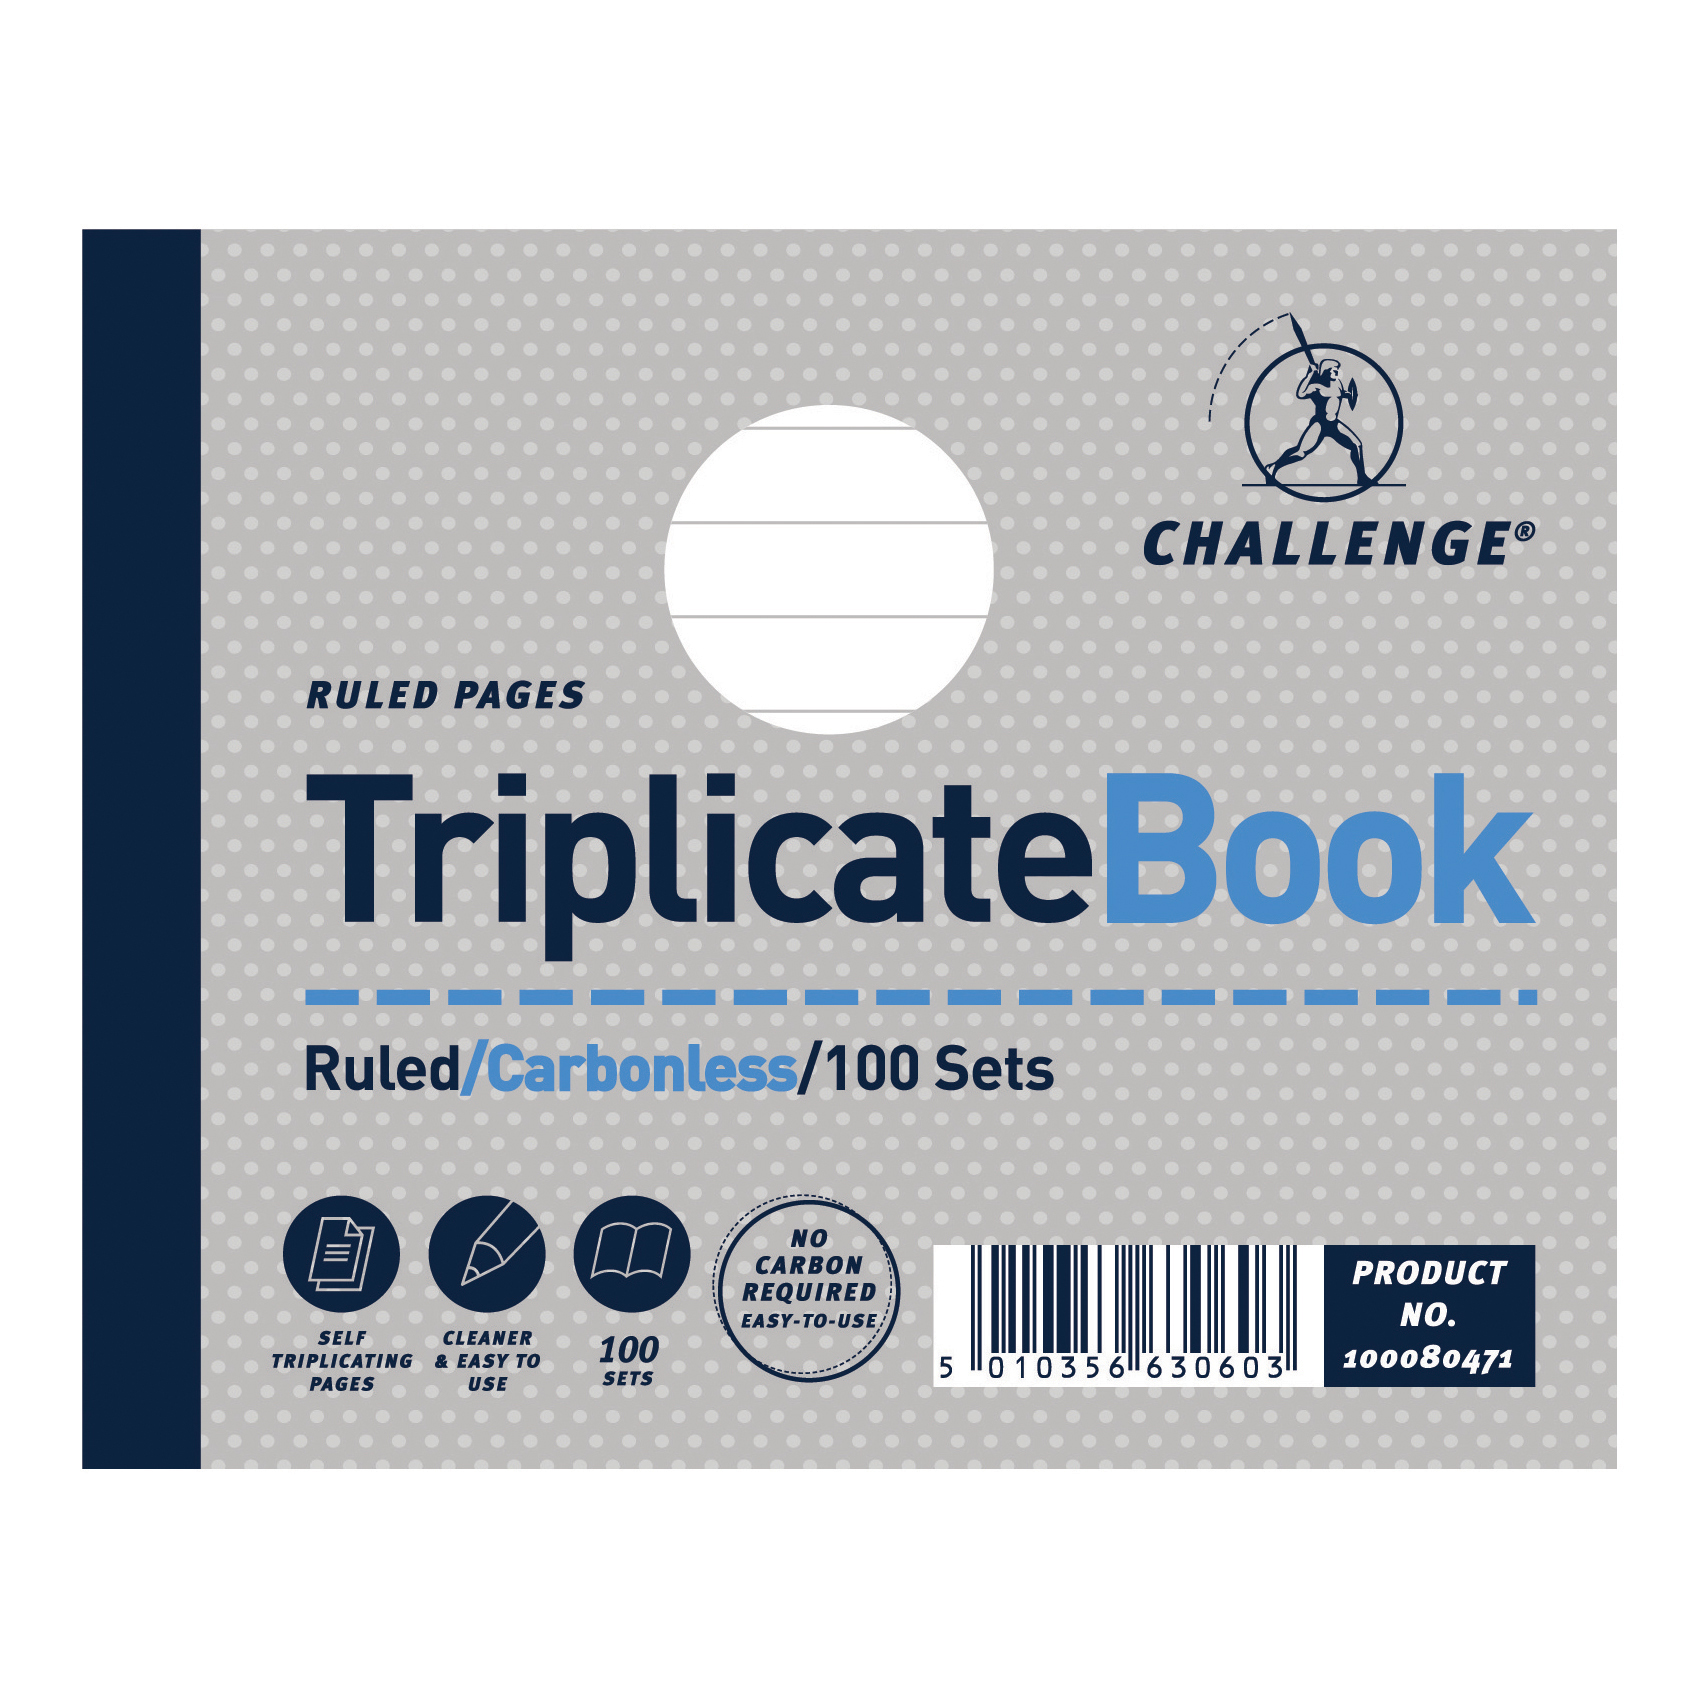 Triplicate Challenge Triplicate Book Carbonless Ruled 100 Sets 105x130mm Ref 100080471 [Pack 5]